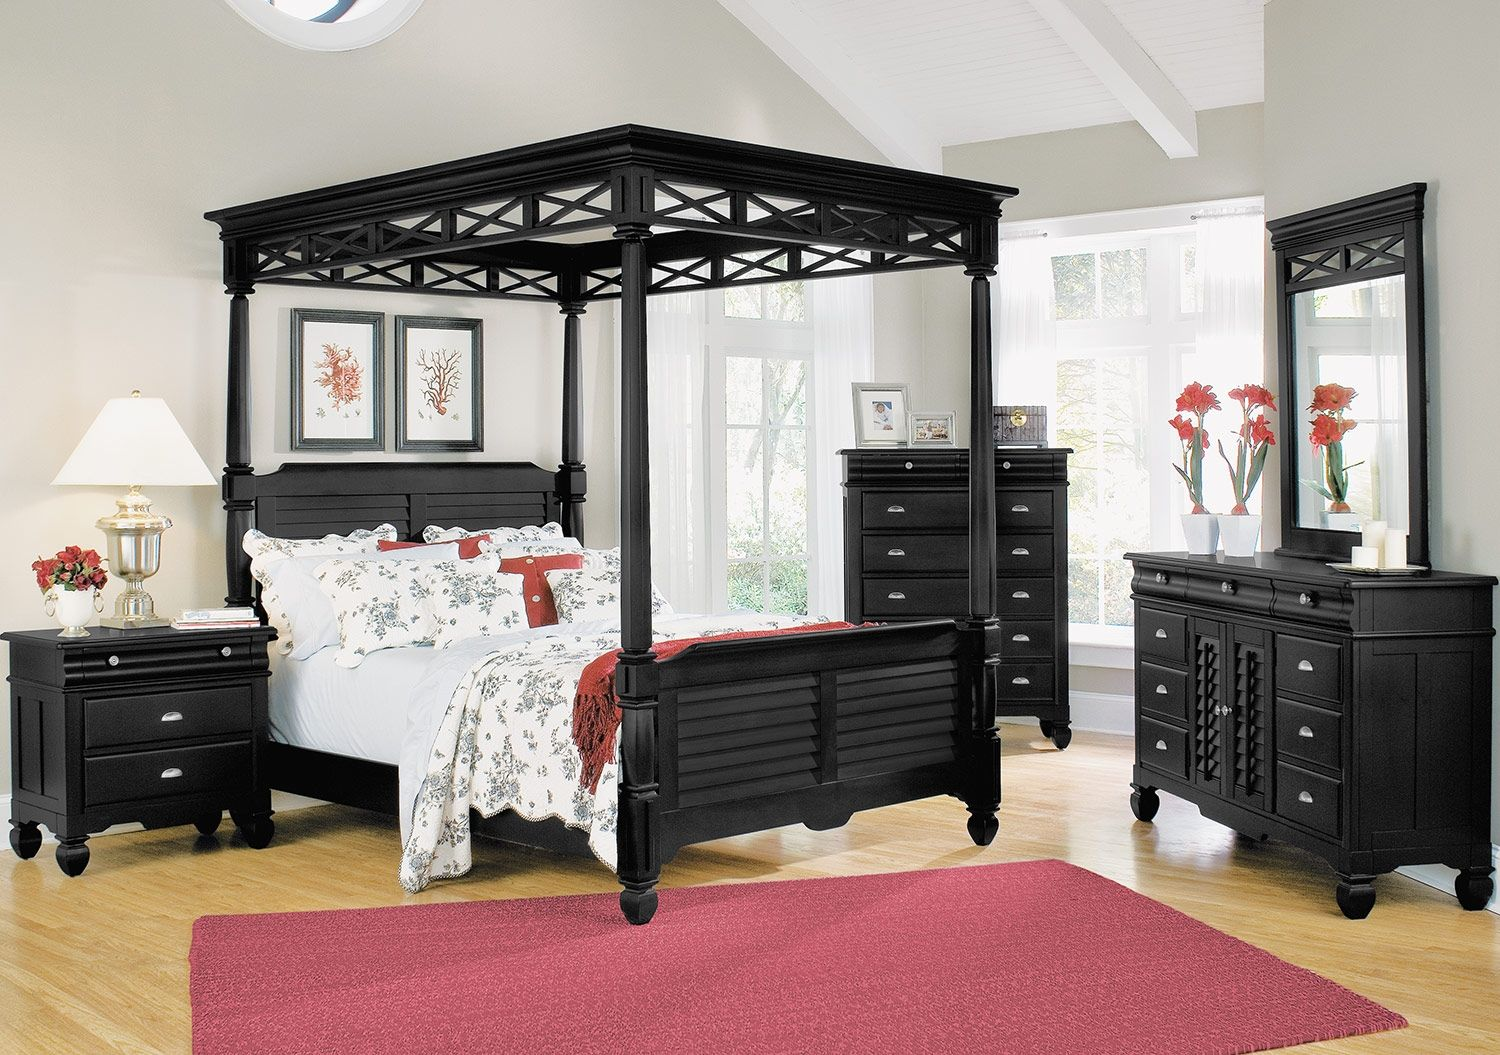 1000 Images About Bedroom Sets On Pinterest Cove Black And